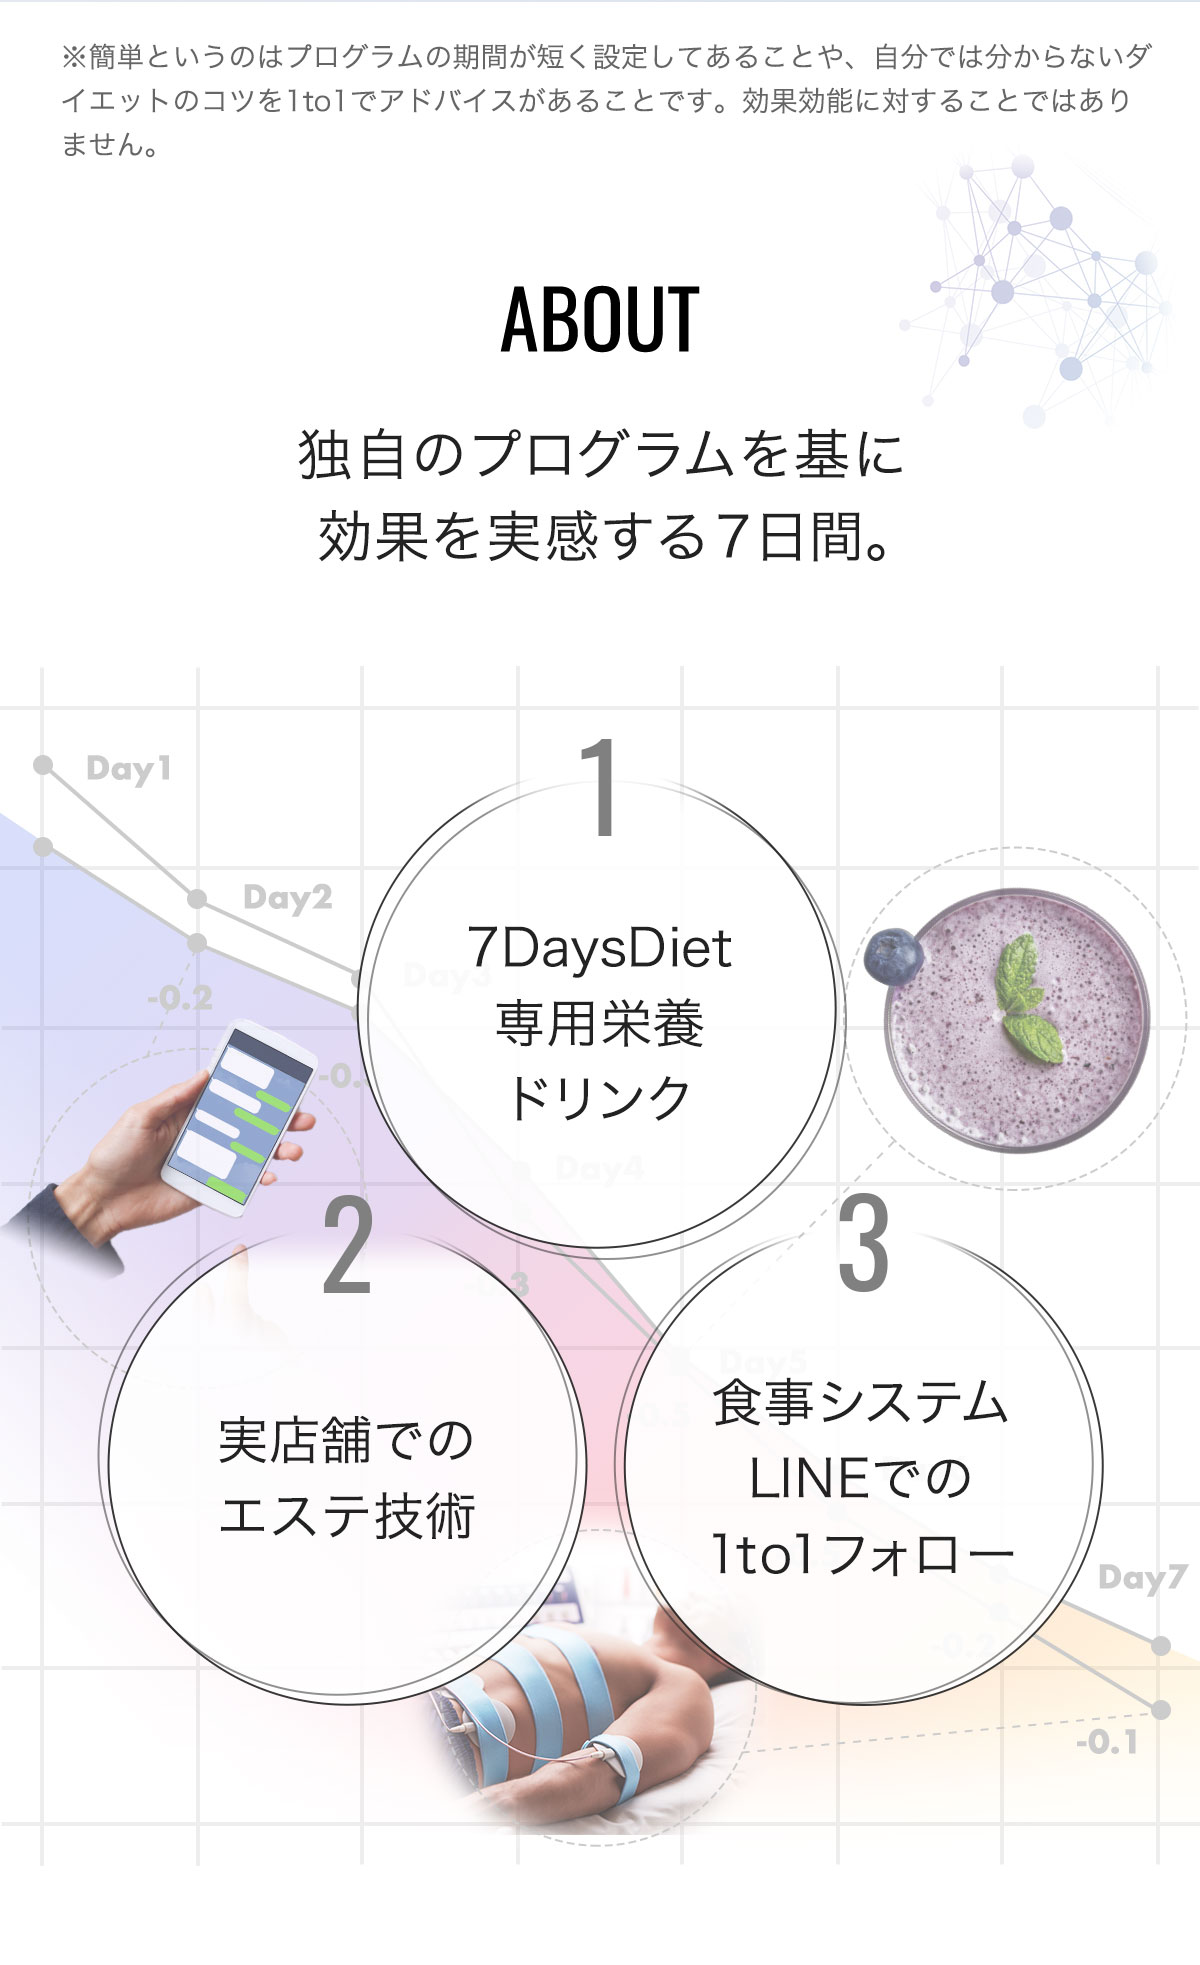 About 独自のプログラムを基に効果を実感する7日間。